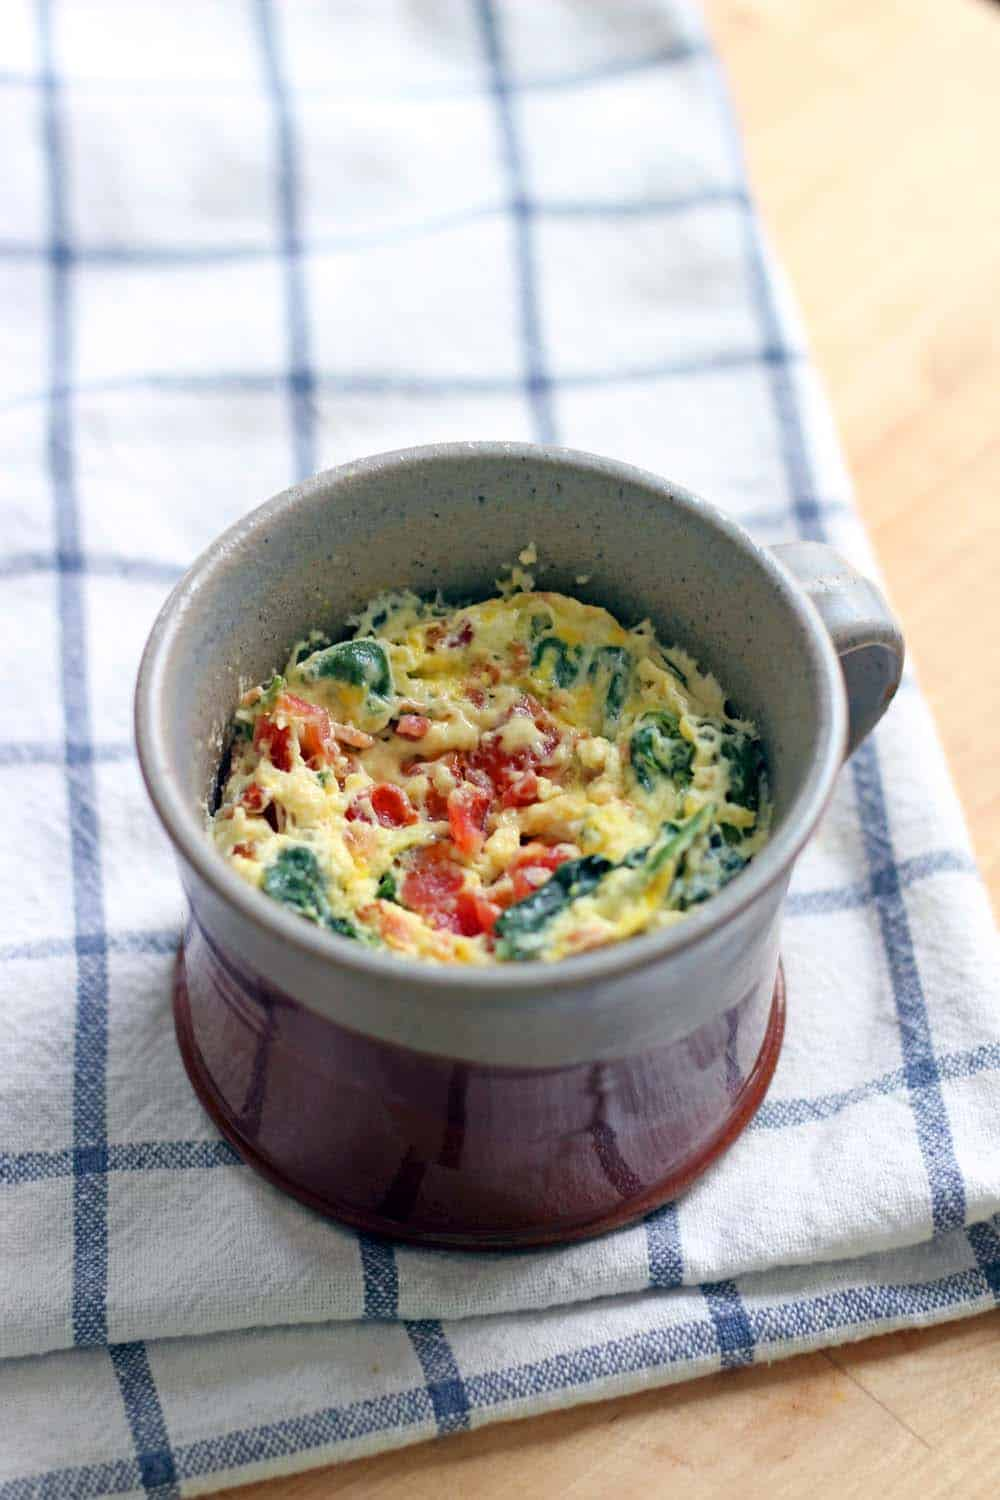 This Spinach and Cheddar Quiche takes only five minutes to make, and is a high protein, veggie-packed breakfast to kickstart your day! No more excuses for not eating breakfast.